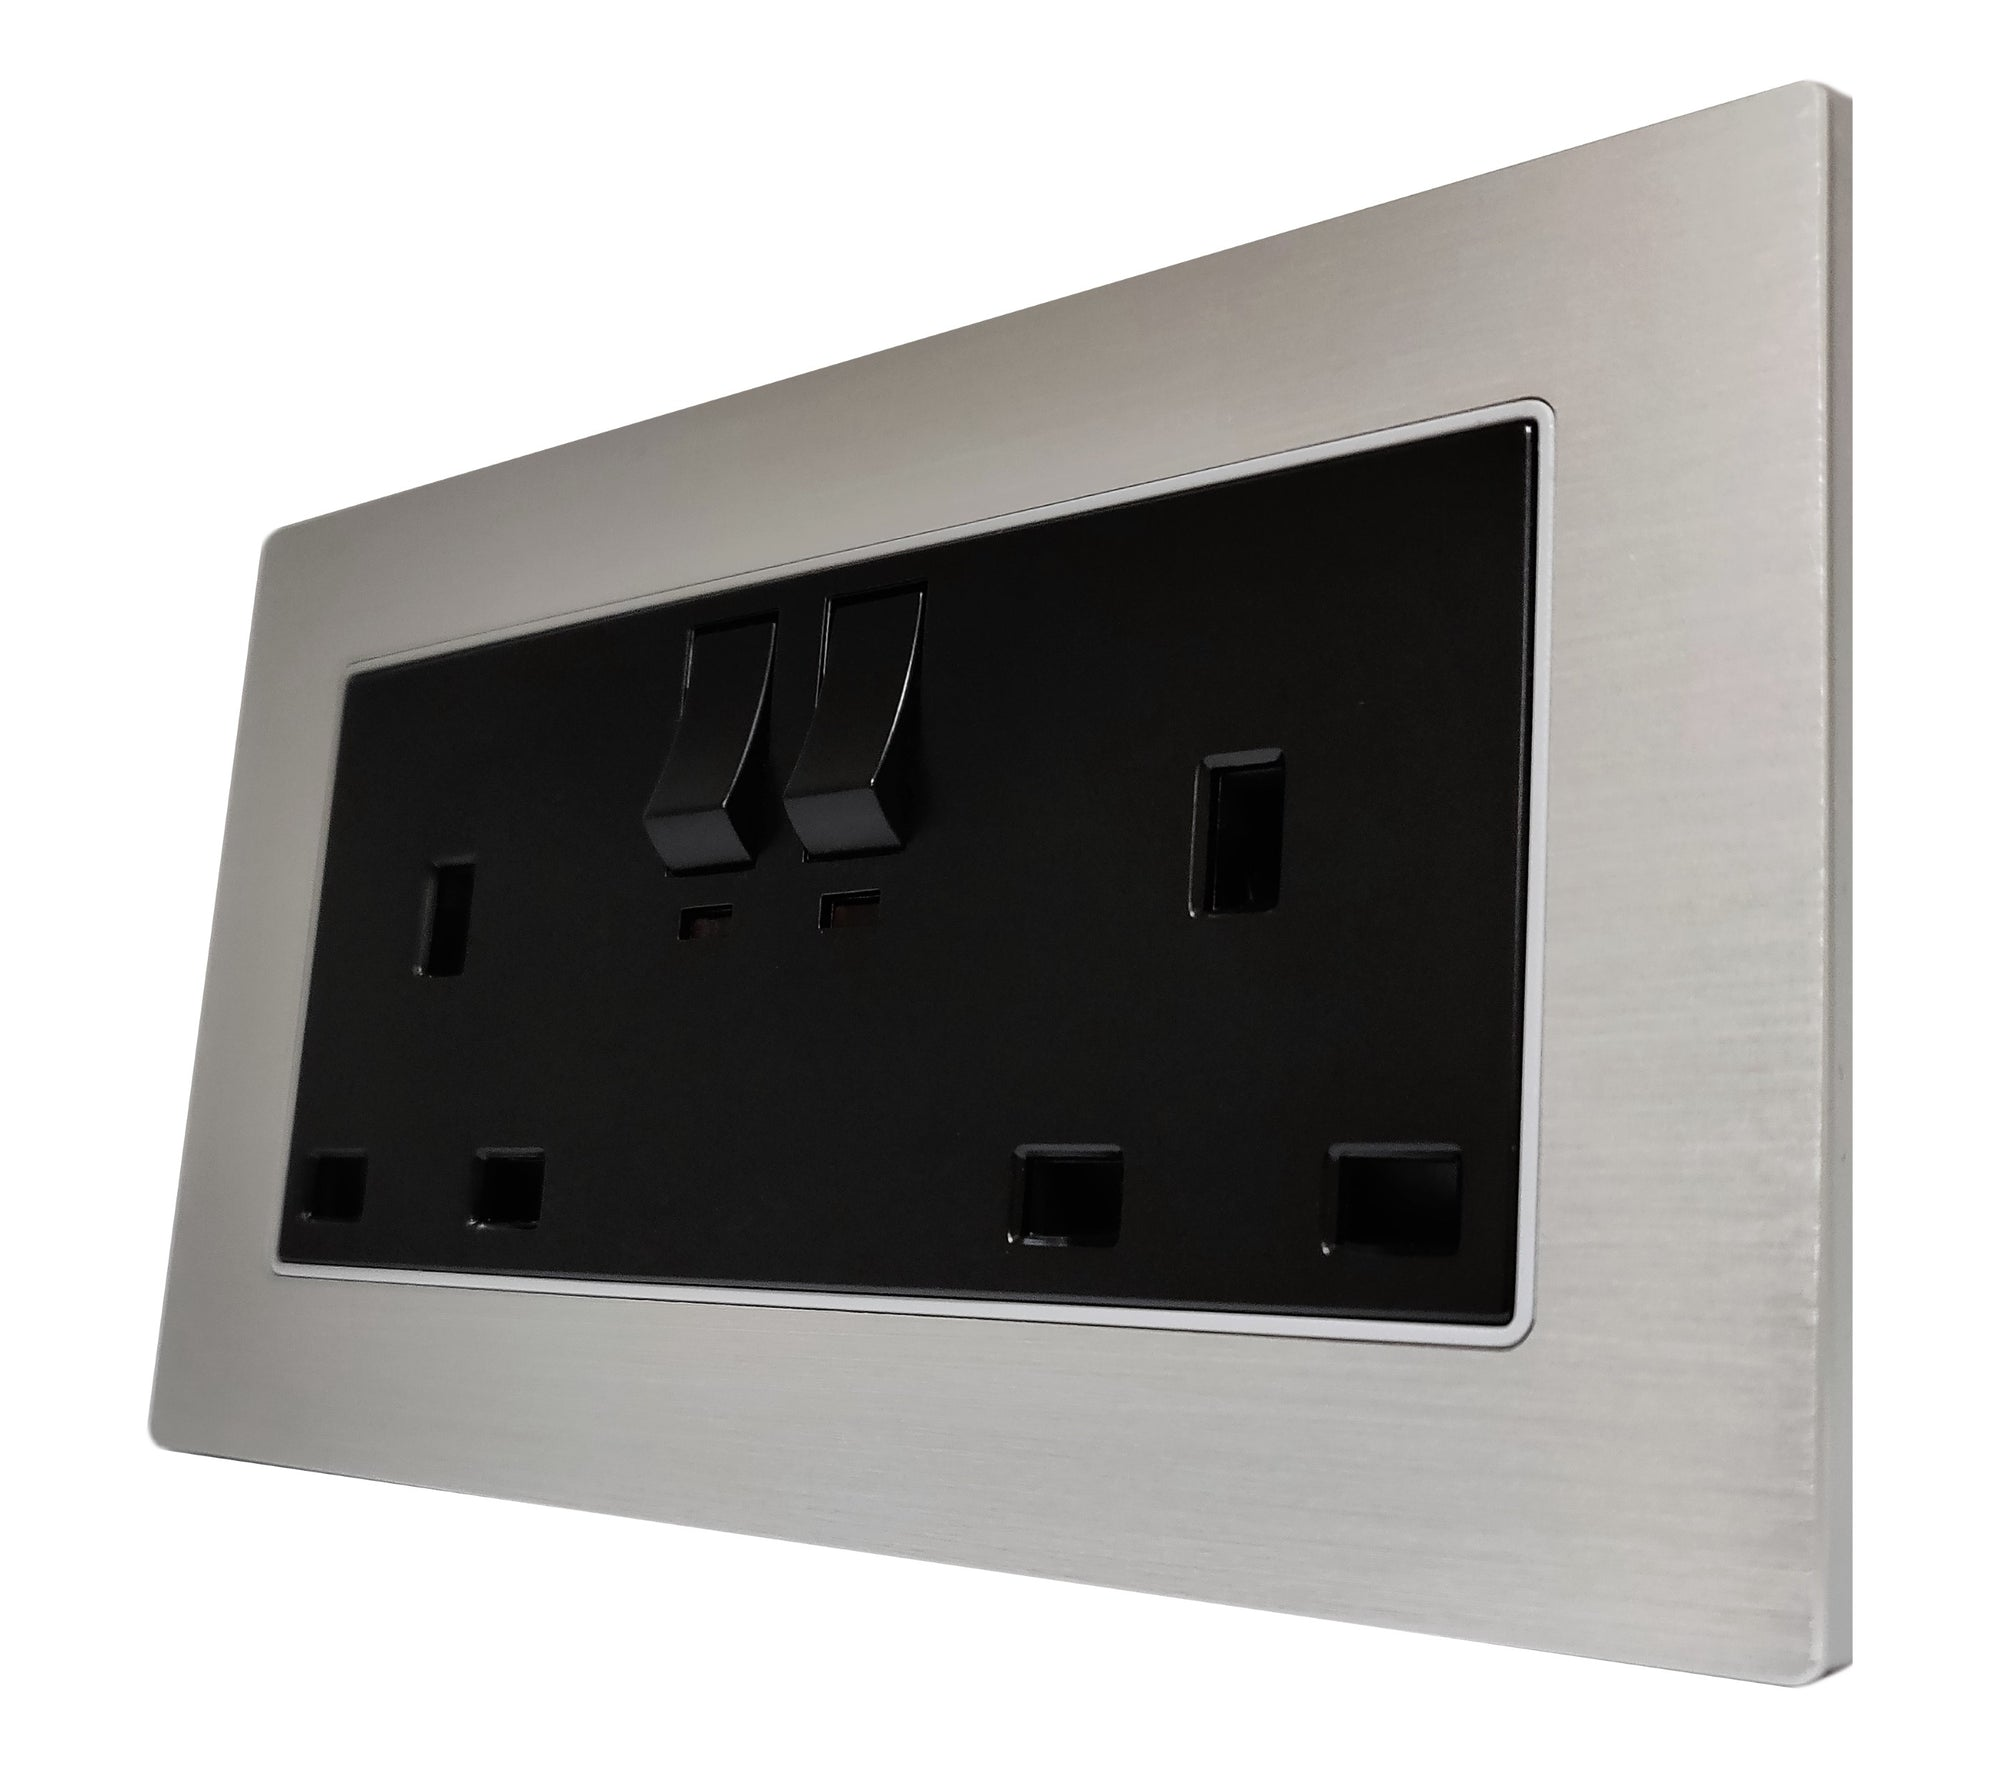 Double UK 13A 3-Pin AC Wall Power Socket in Silver Brushed Alum Frame & Black Centre